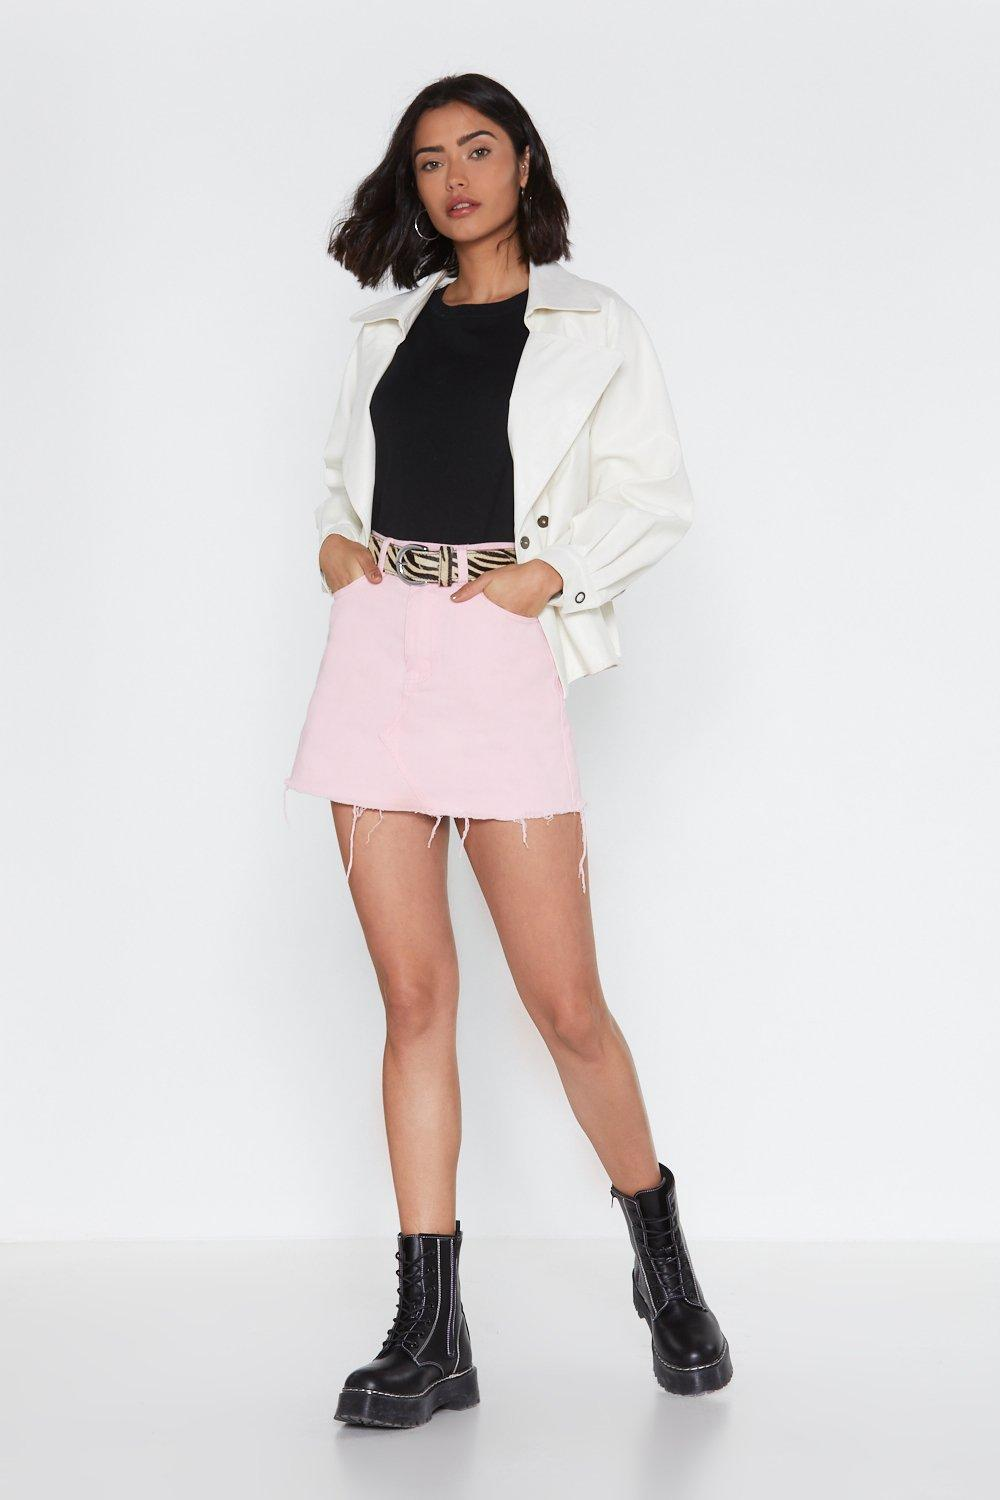 With You In A Mini Denim Skirt by Nasty Gal